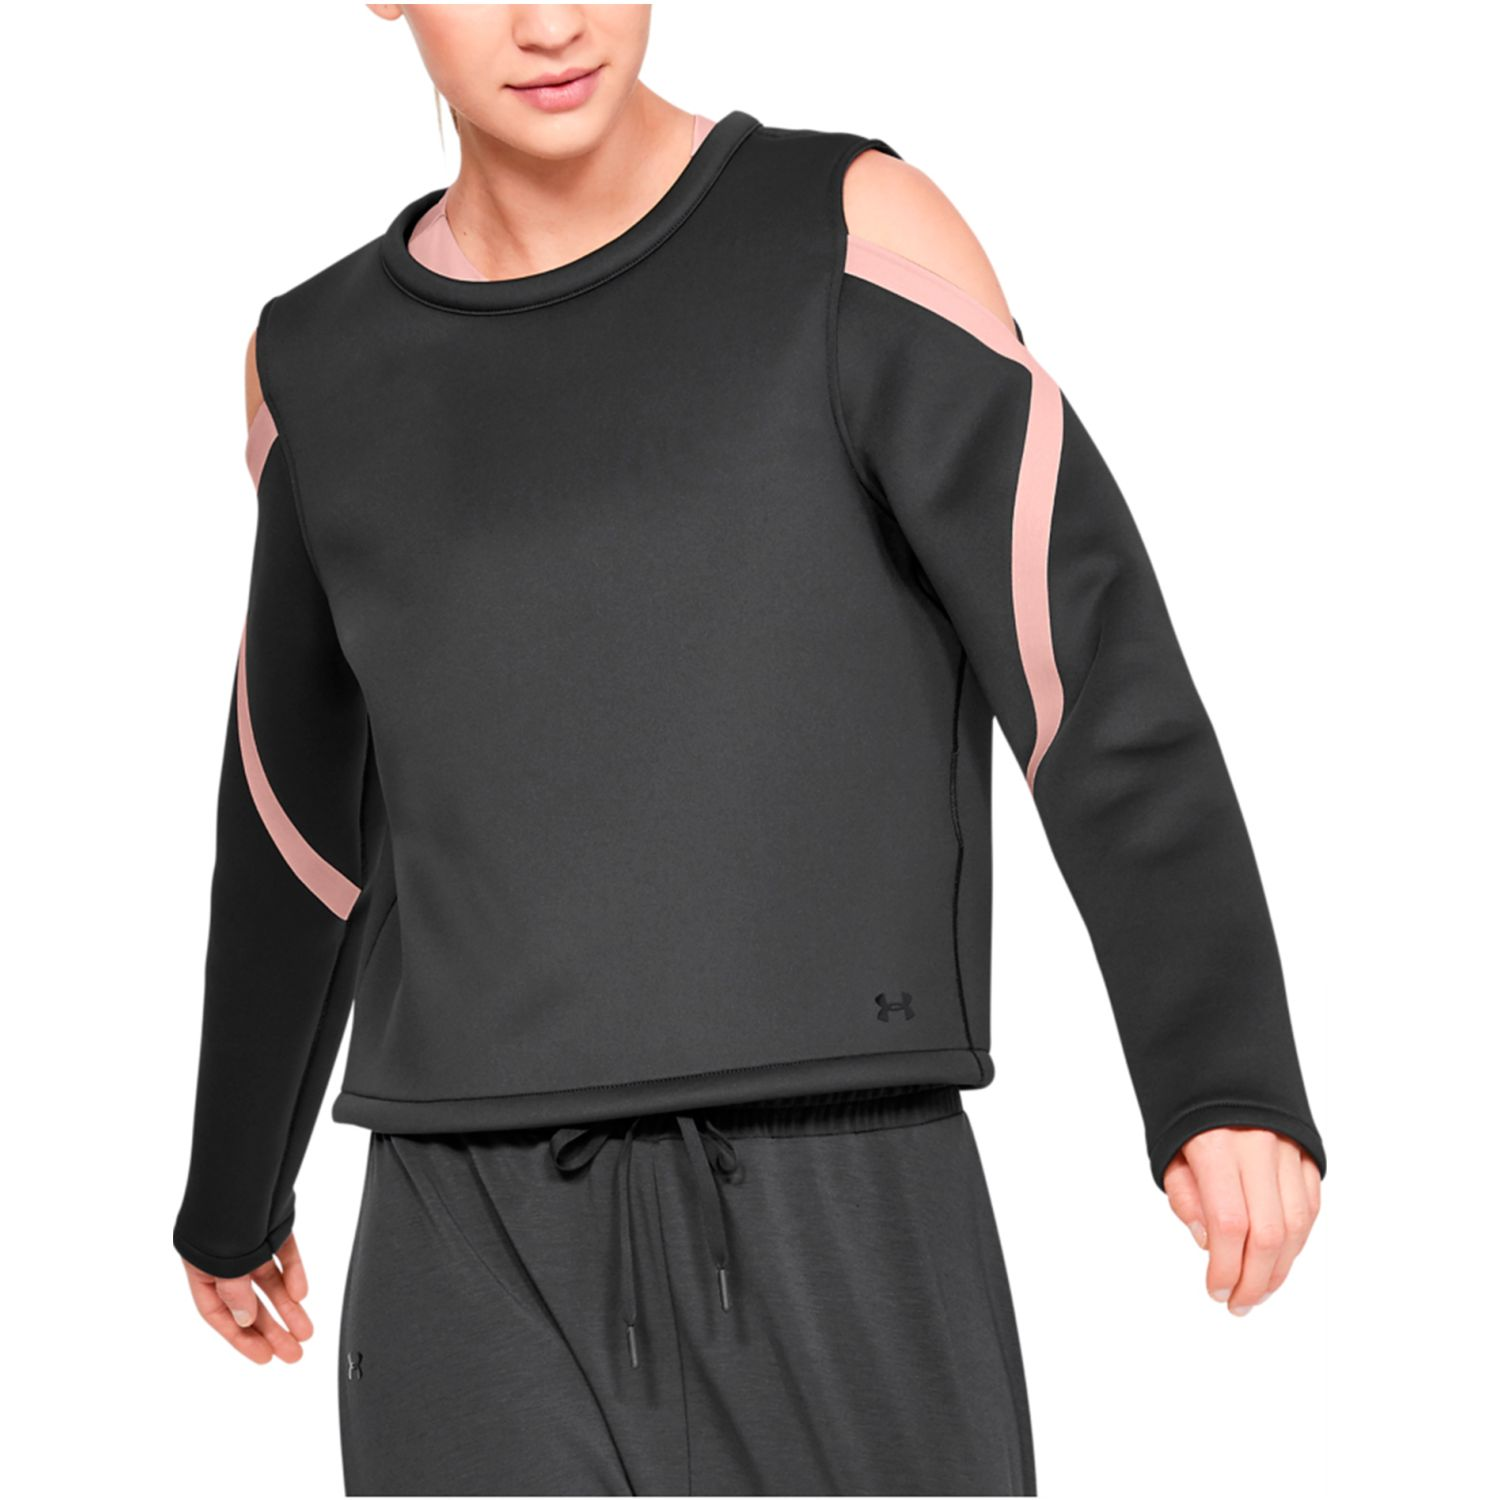 Under Armour misty signature long sleeve spacer Negro Pullovers